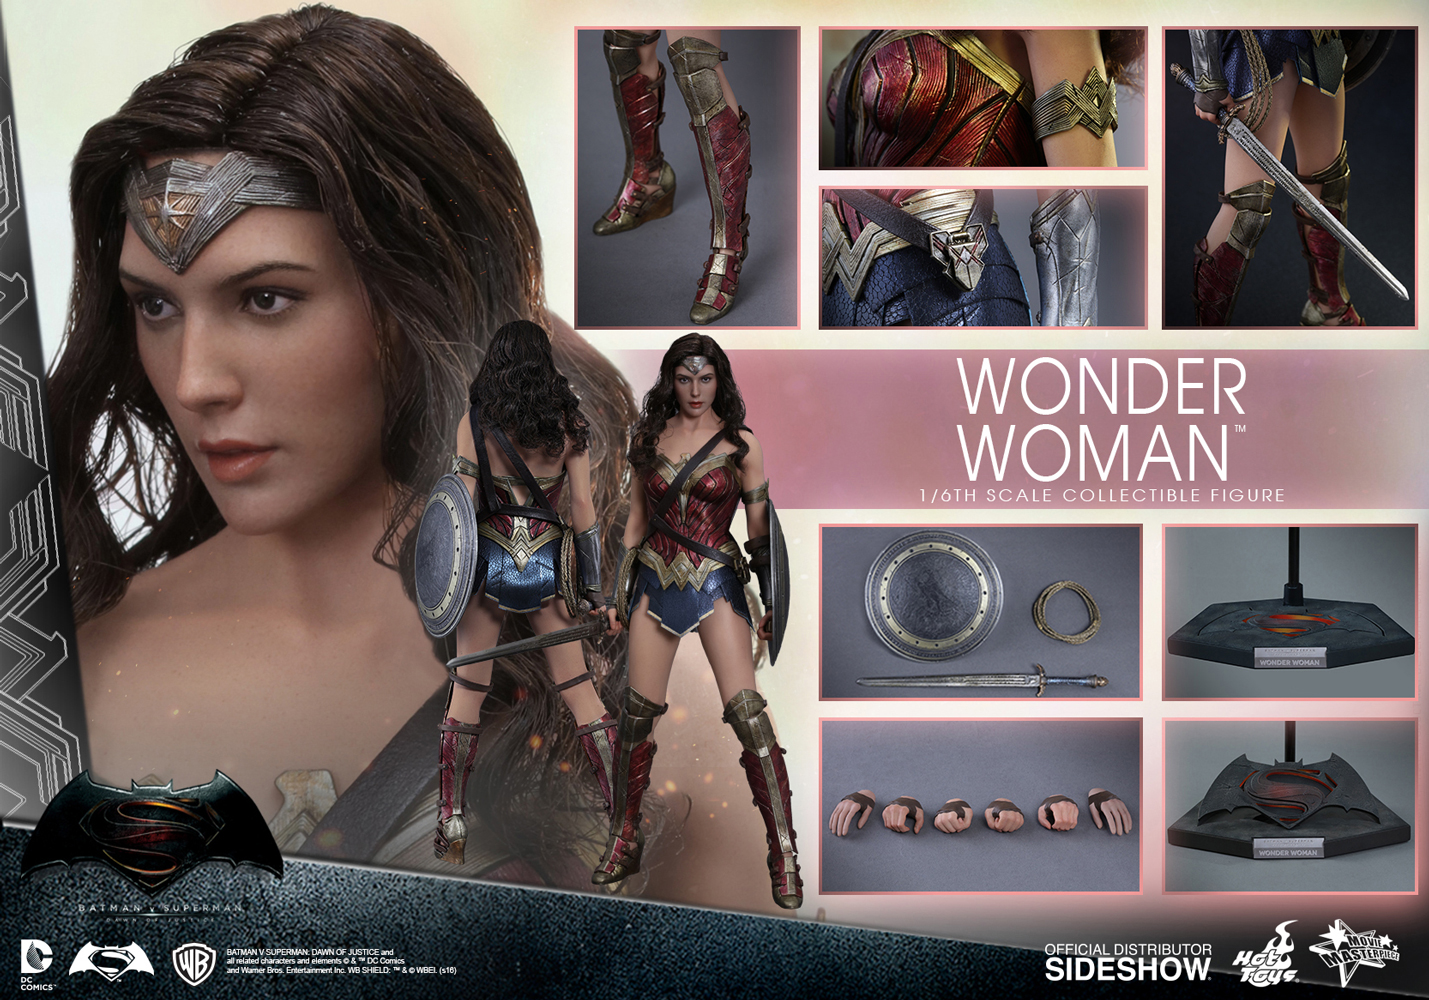 Collectibles for Women